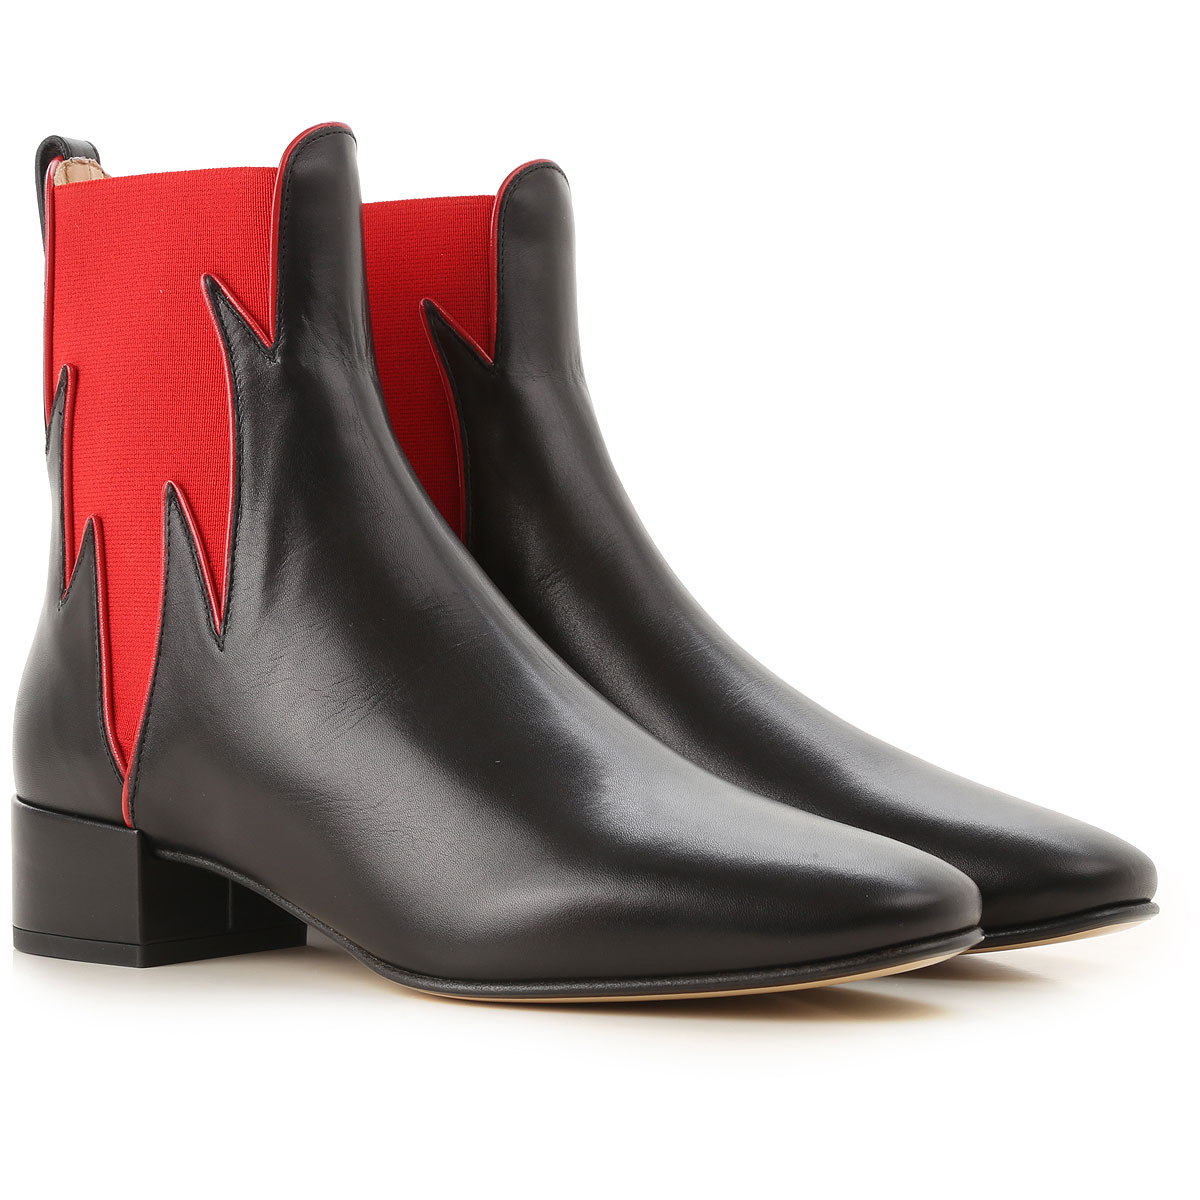 Image of Francesco Russo Boots for Women, Booties, Black, Leather, 2017, 10 7 8 8.5 9